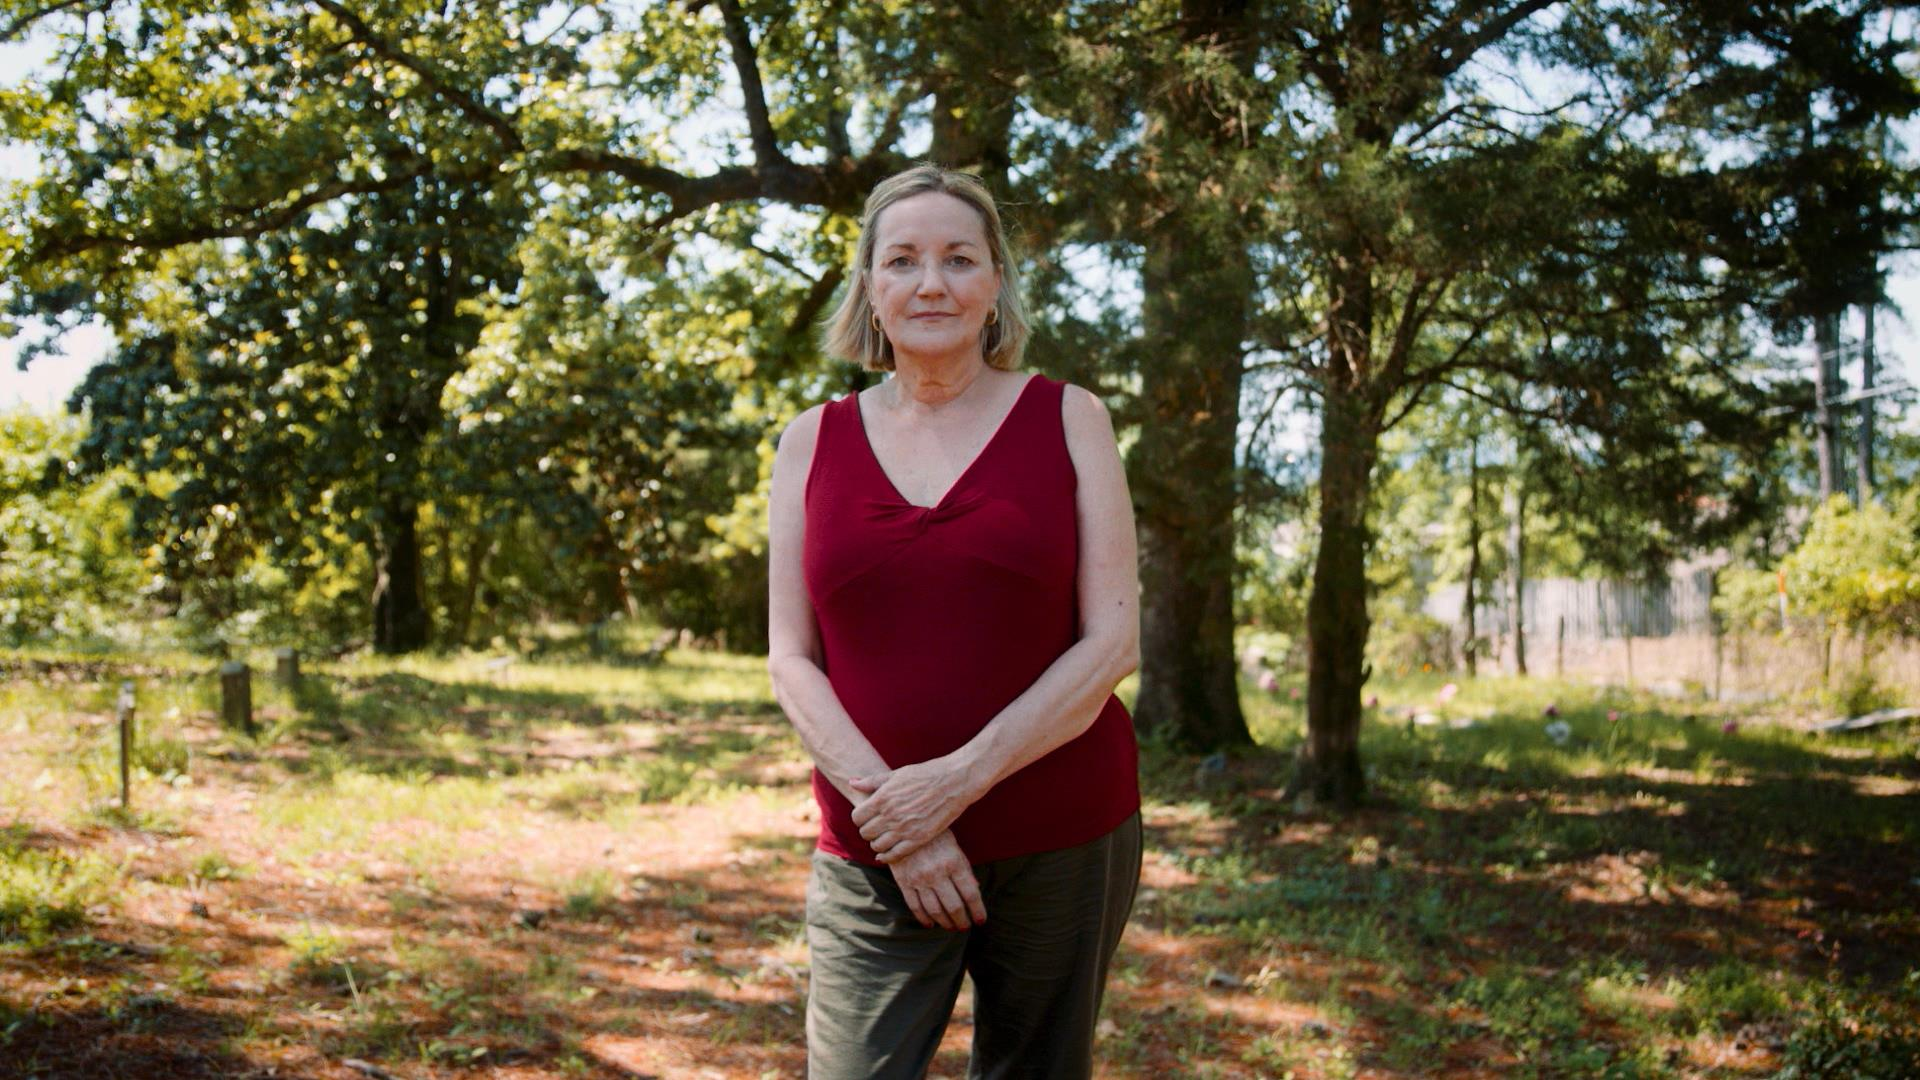 Meet the 'cemetery angel': Ruth Coker Burks provided end-of-life care to over 1000 AIDS patients